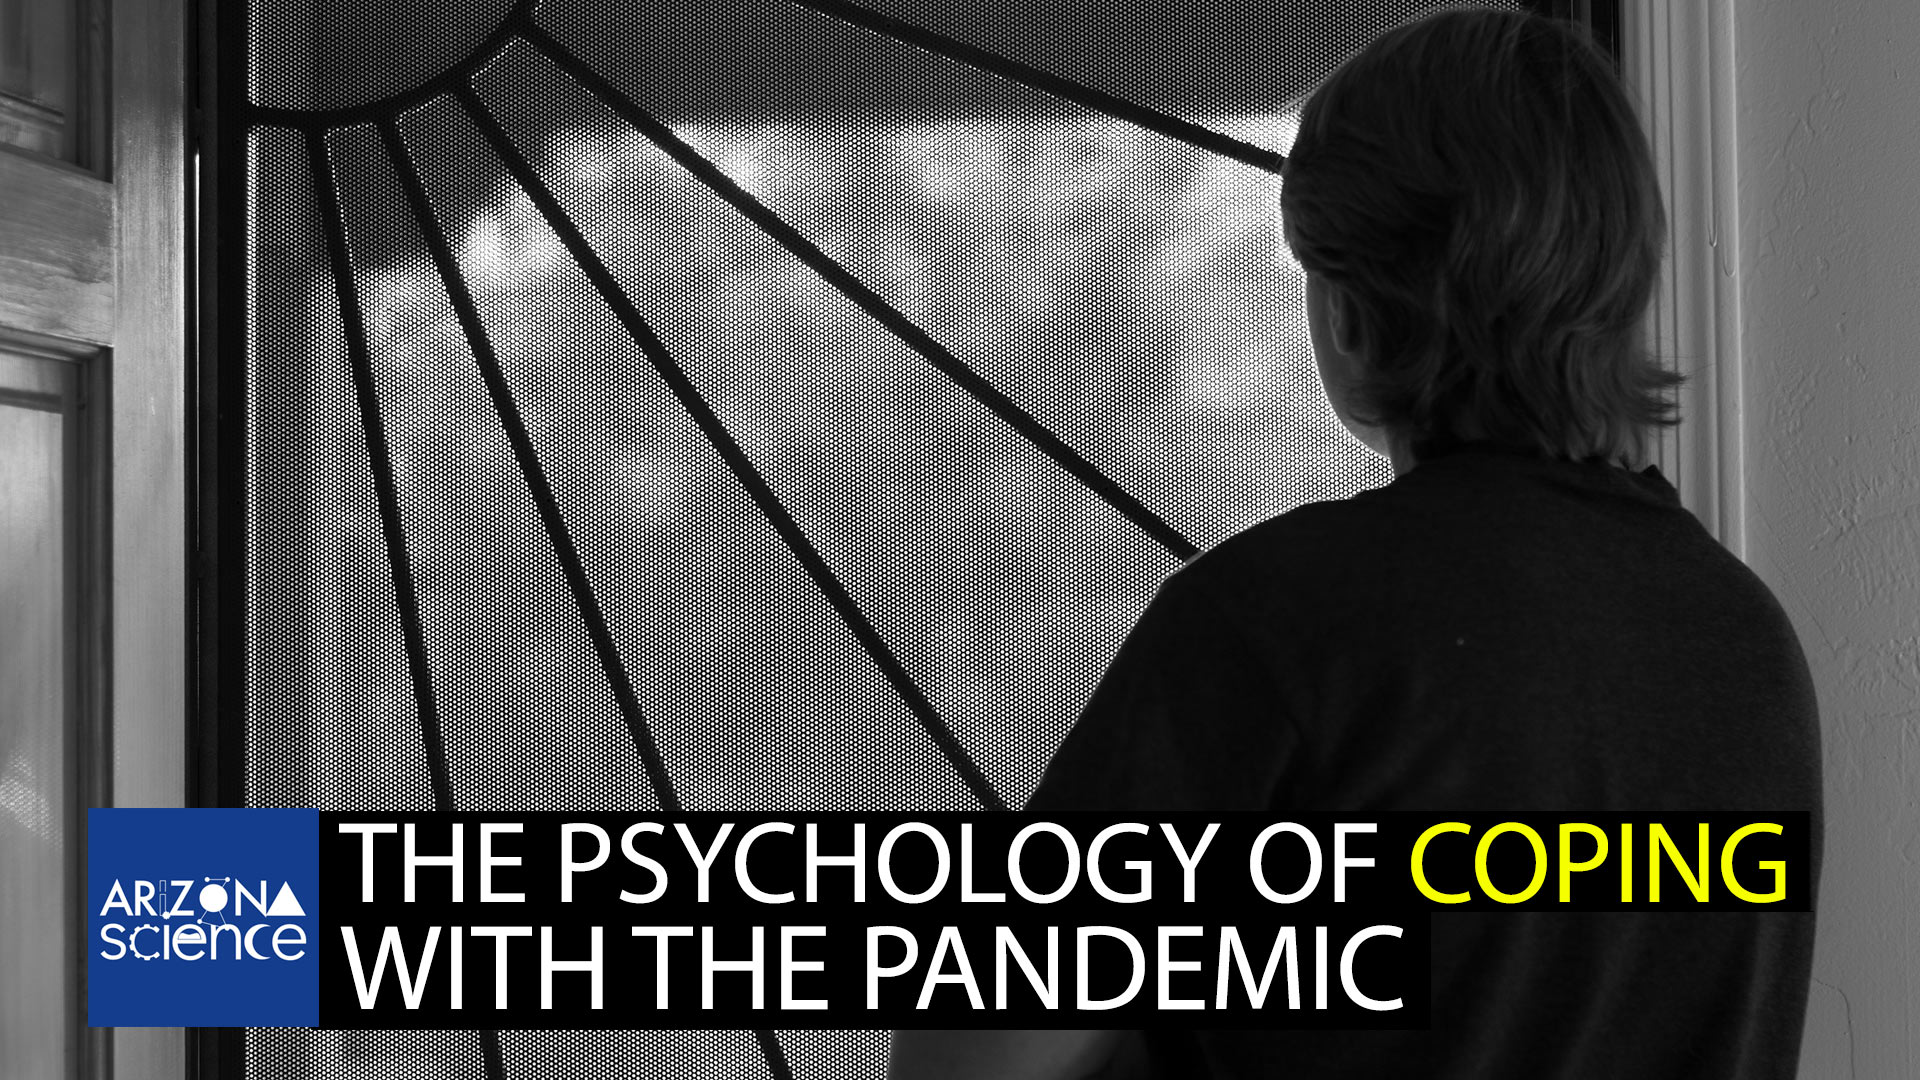 Episode 243:The psychology of coping with the coronavirus pandemic